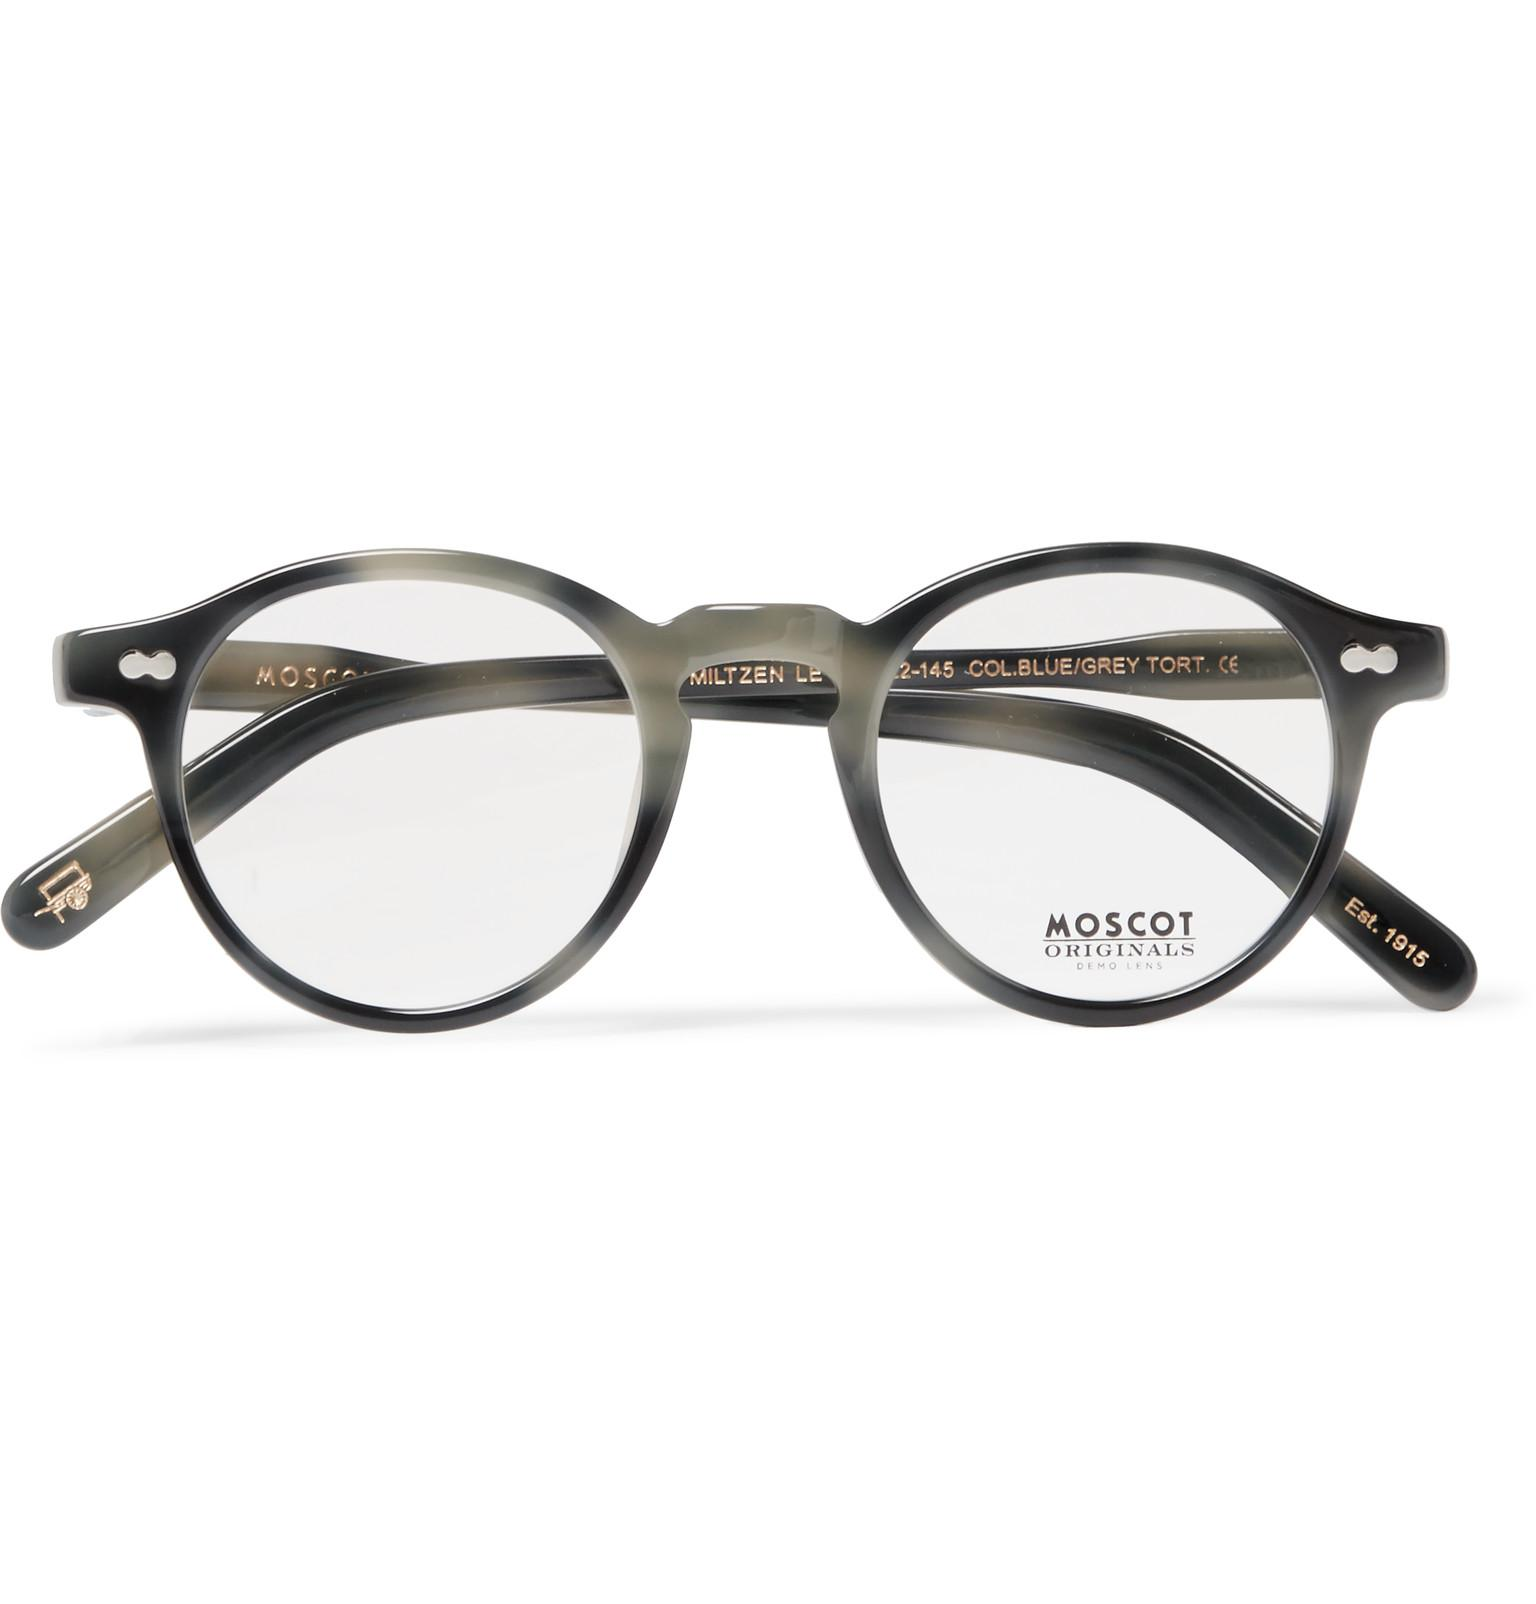 cccb3db1ab Lyst - Moscot Miltzen Round-frame Acetate Sunglasses in Gray for Men